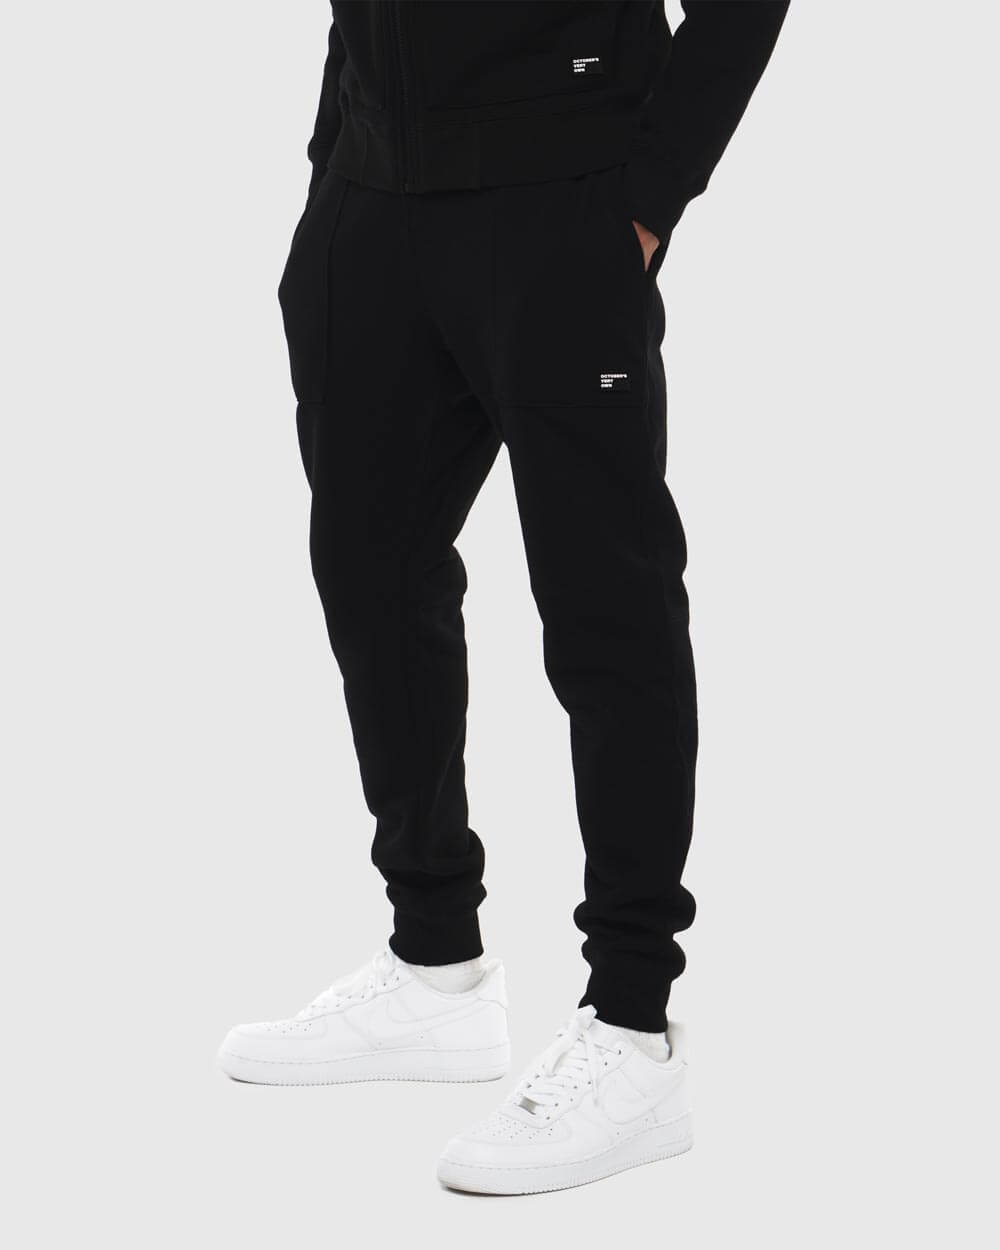 OVO THERMAL SWEATPANT - BLACK